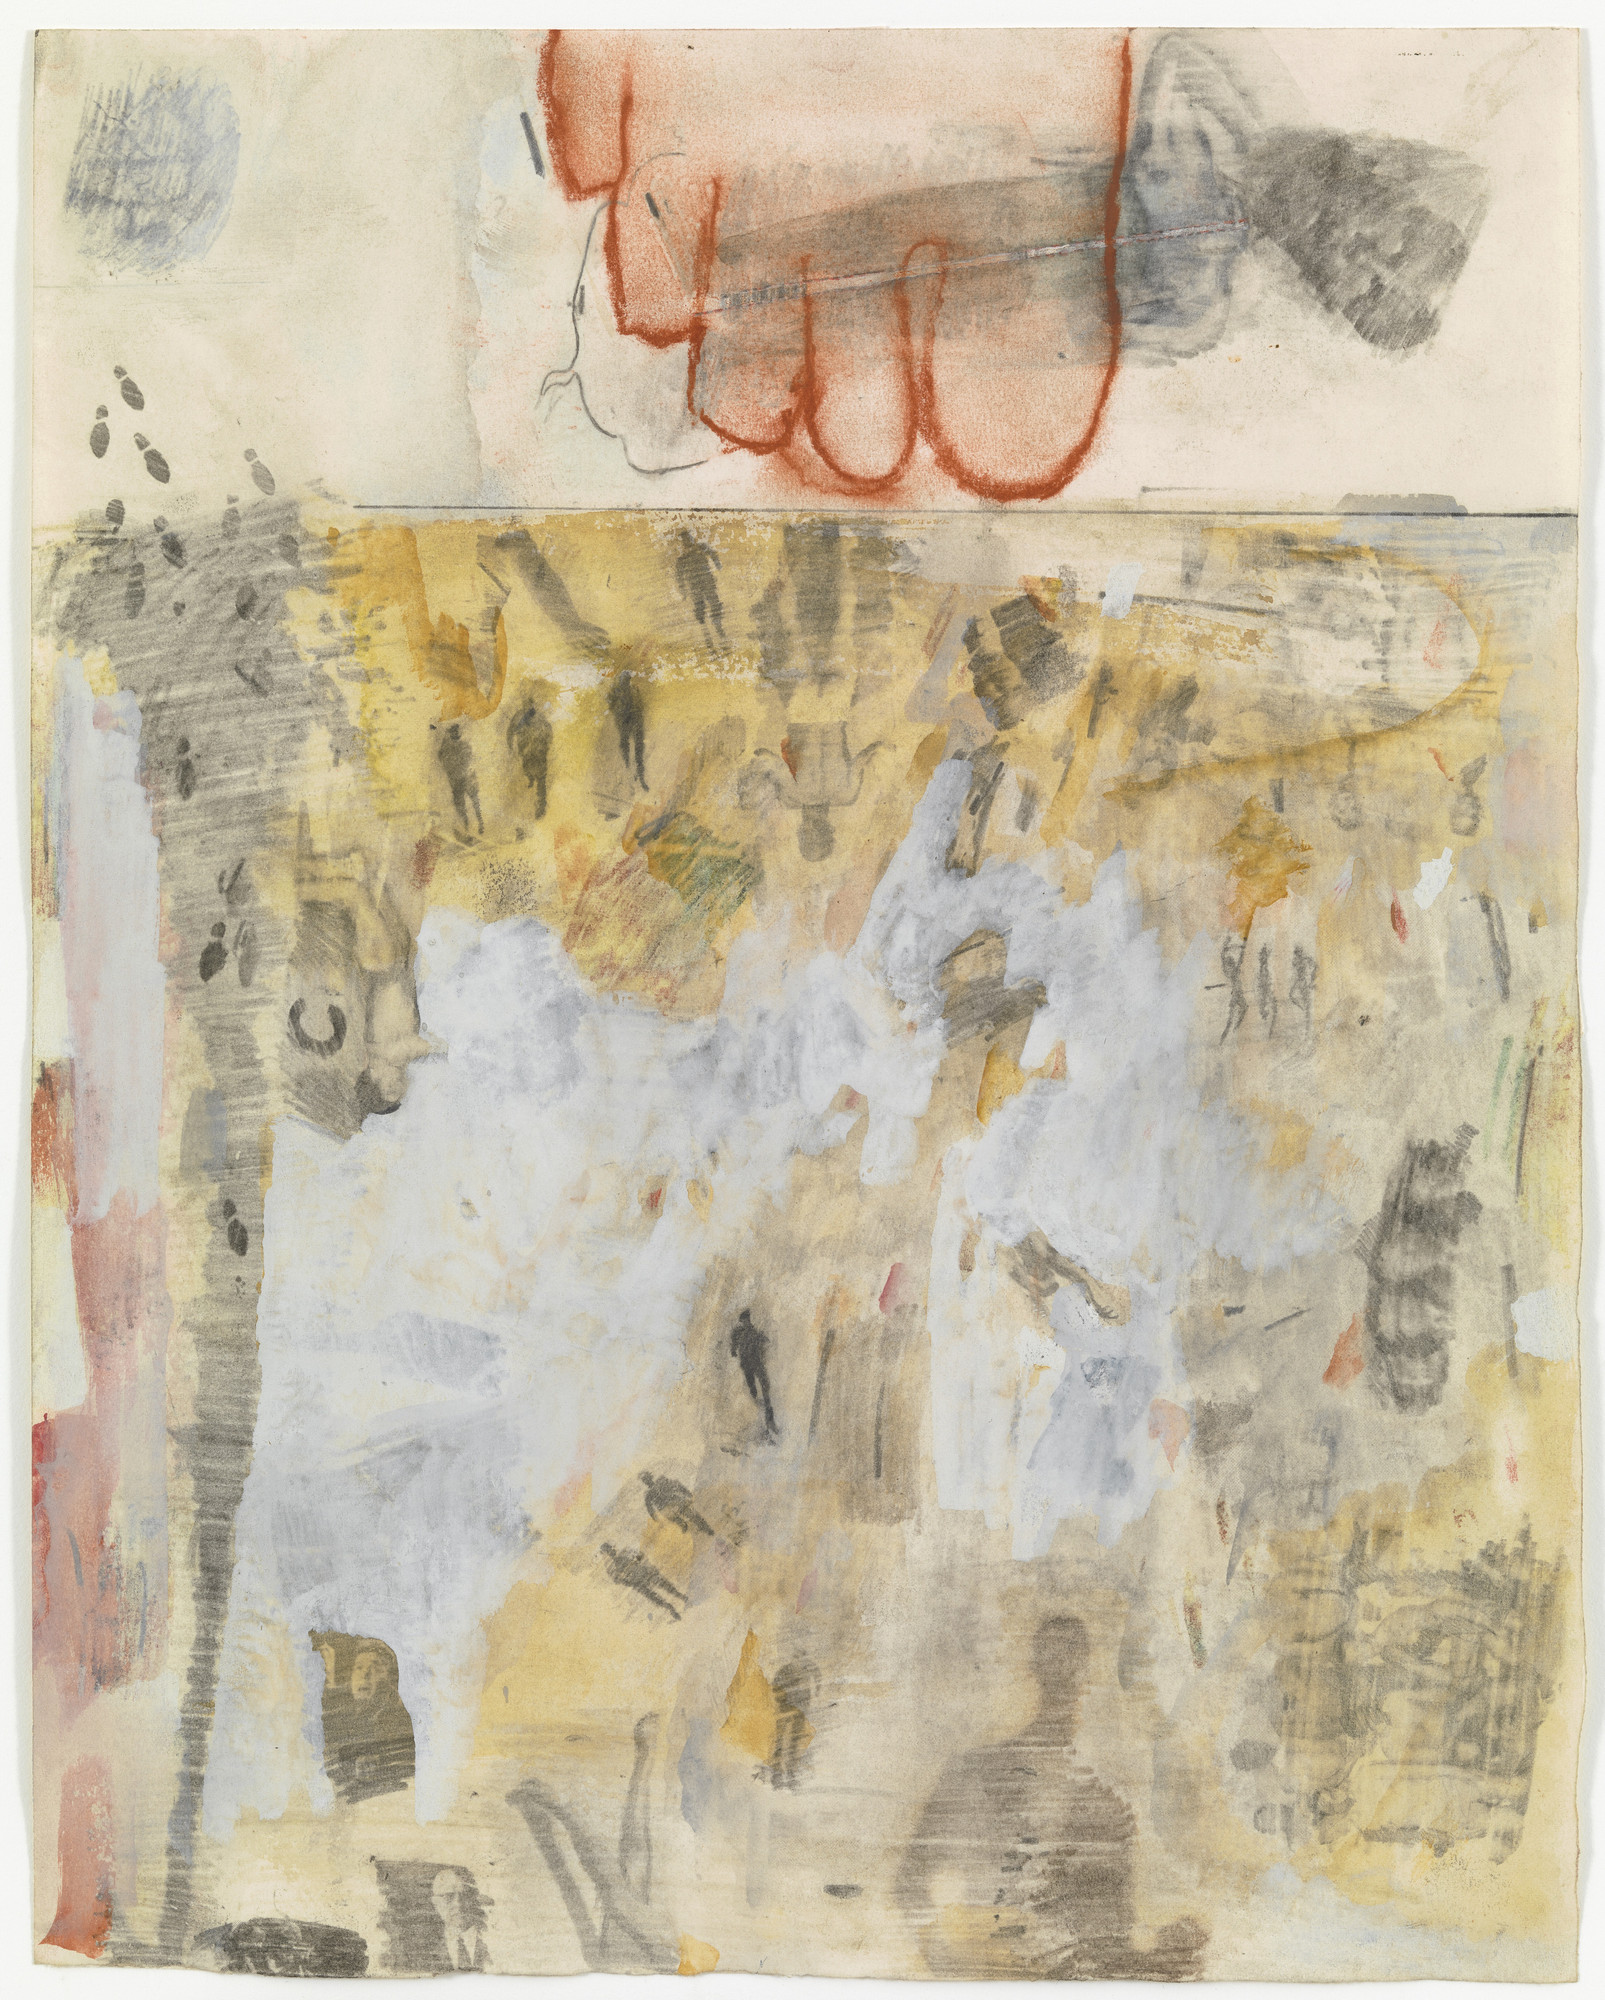 Robert Rauschenberg. Canto XIV: Circle Seven, Round 3, The Violent Against God, Nature, and Art, from the series Thirty-Four Illustrations for Dante's Inferno. (1959-60)